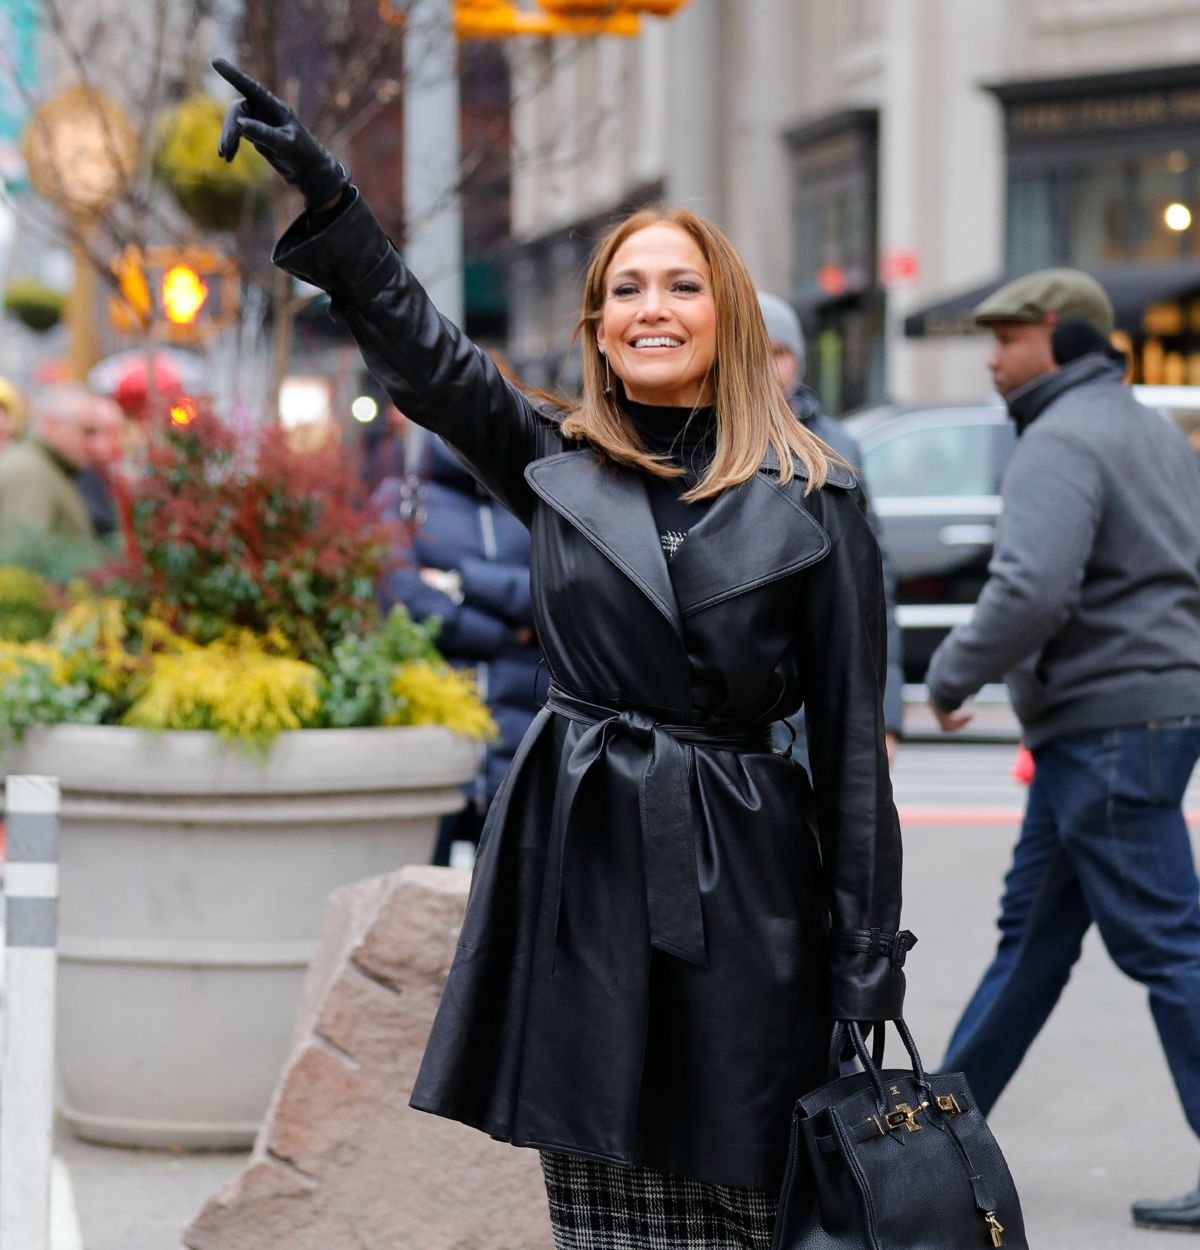 e428bb3c58 Jennifer Lopez Hails cab in midtown after filming with friend